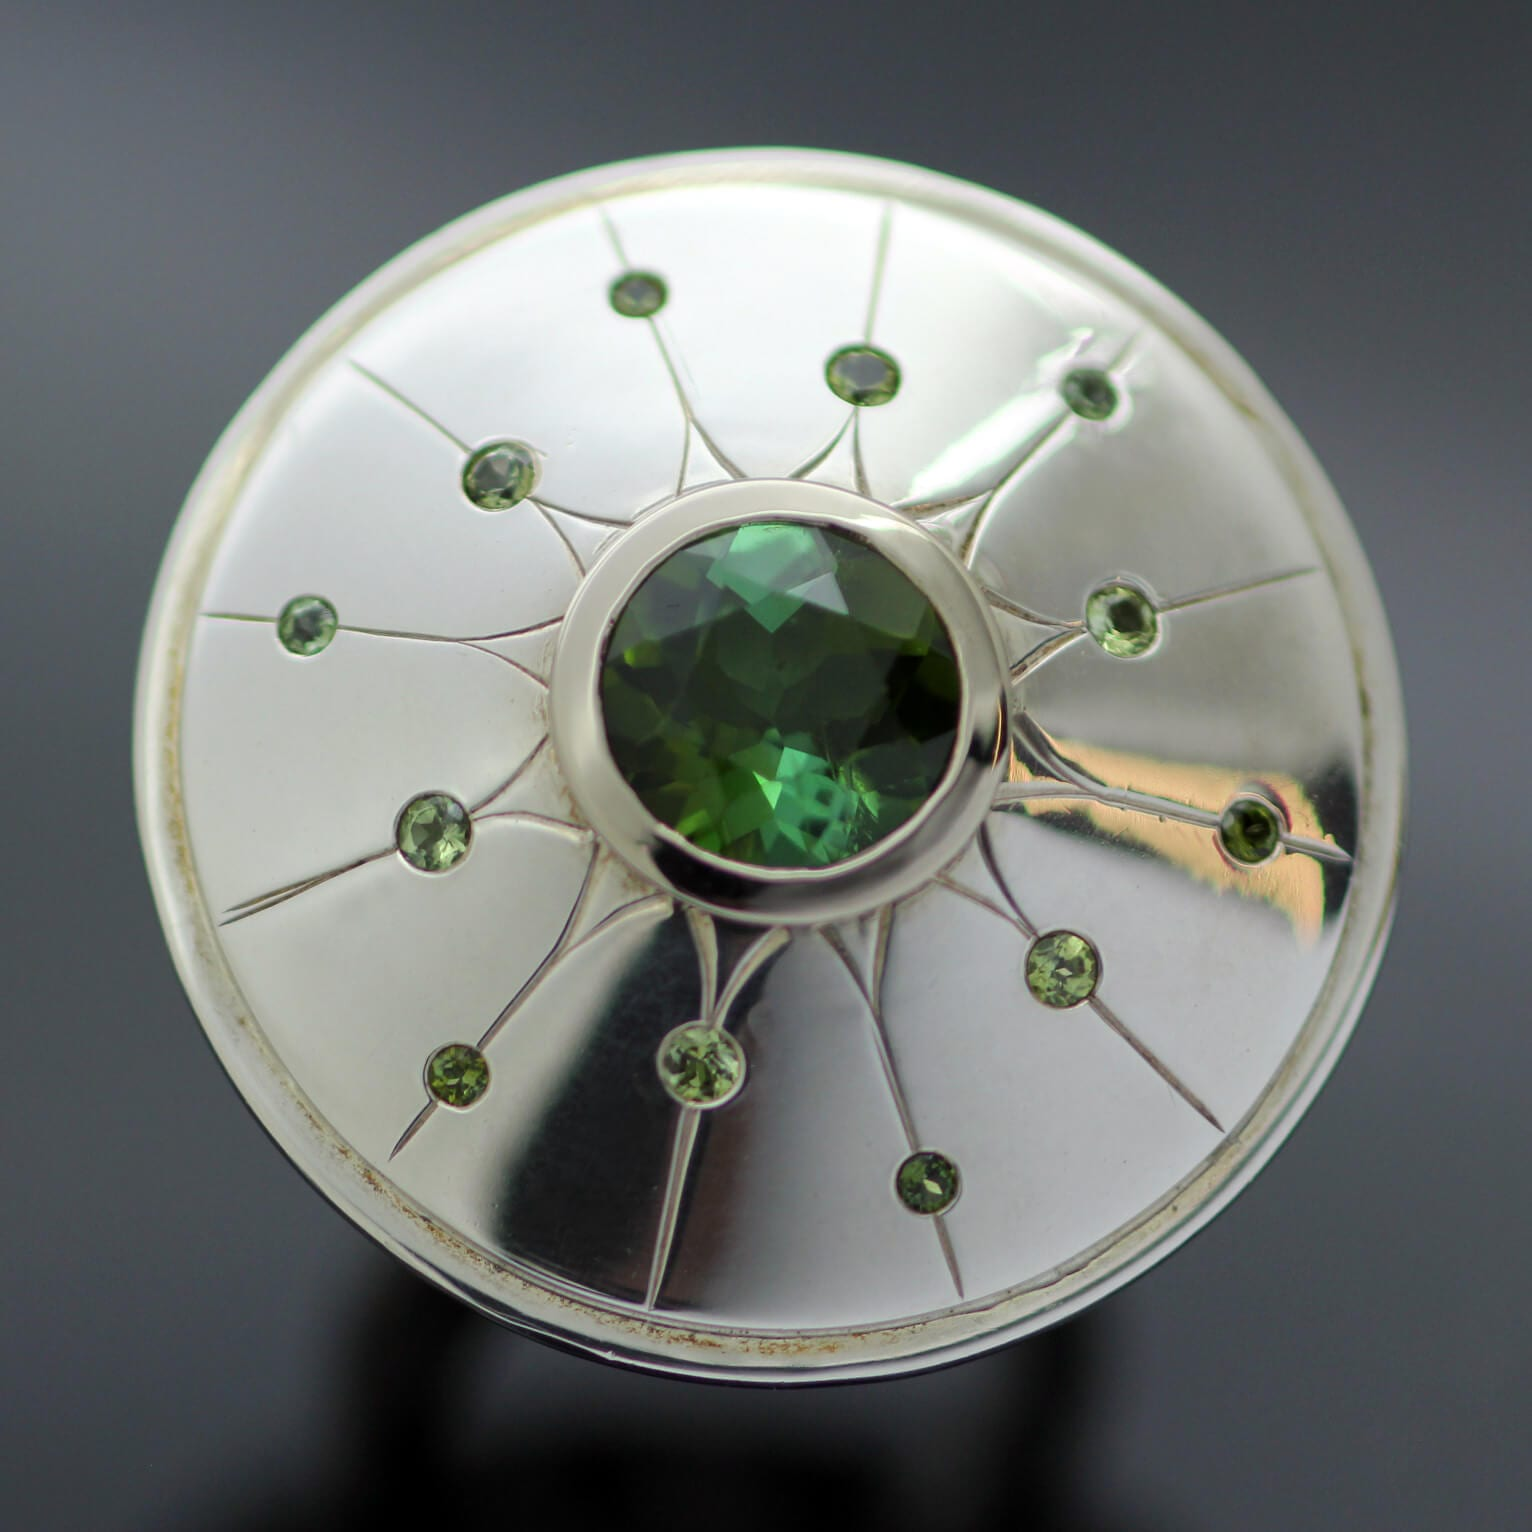 Cocktail ring handmade from Silver and White Gold with Green Tourmaline and Sapphire gemstones